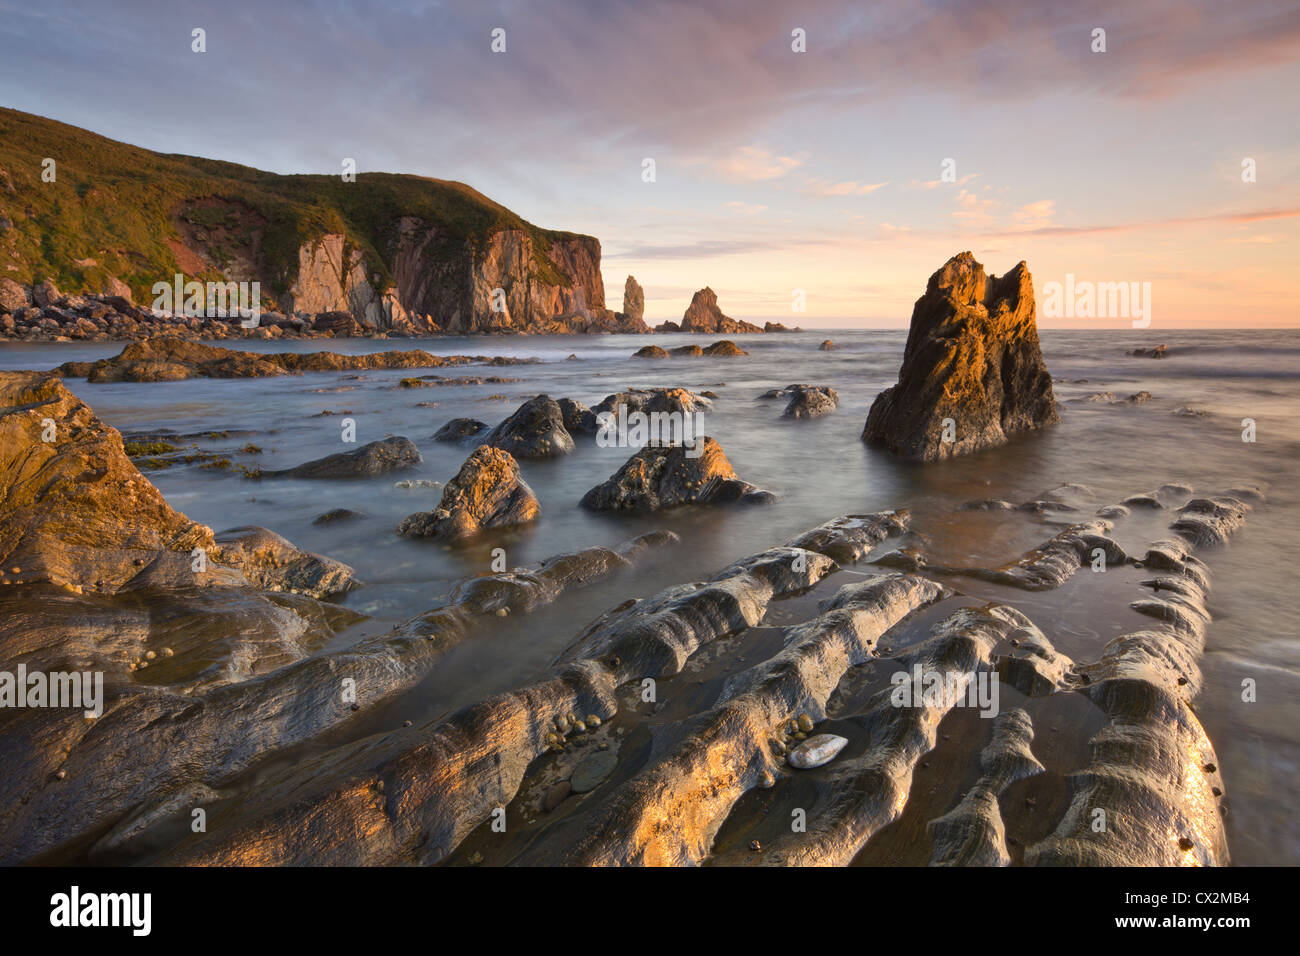 Golden evening sunlight bathes the rocks and ledges at Bantham in the South Hams, South Devon, England. Autumn (September) - Stock Image